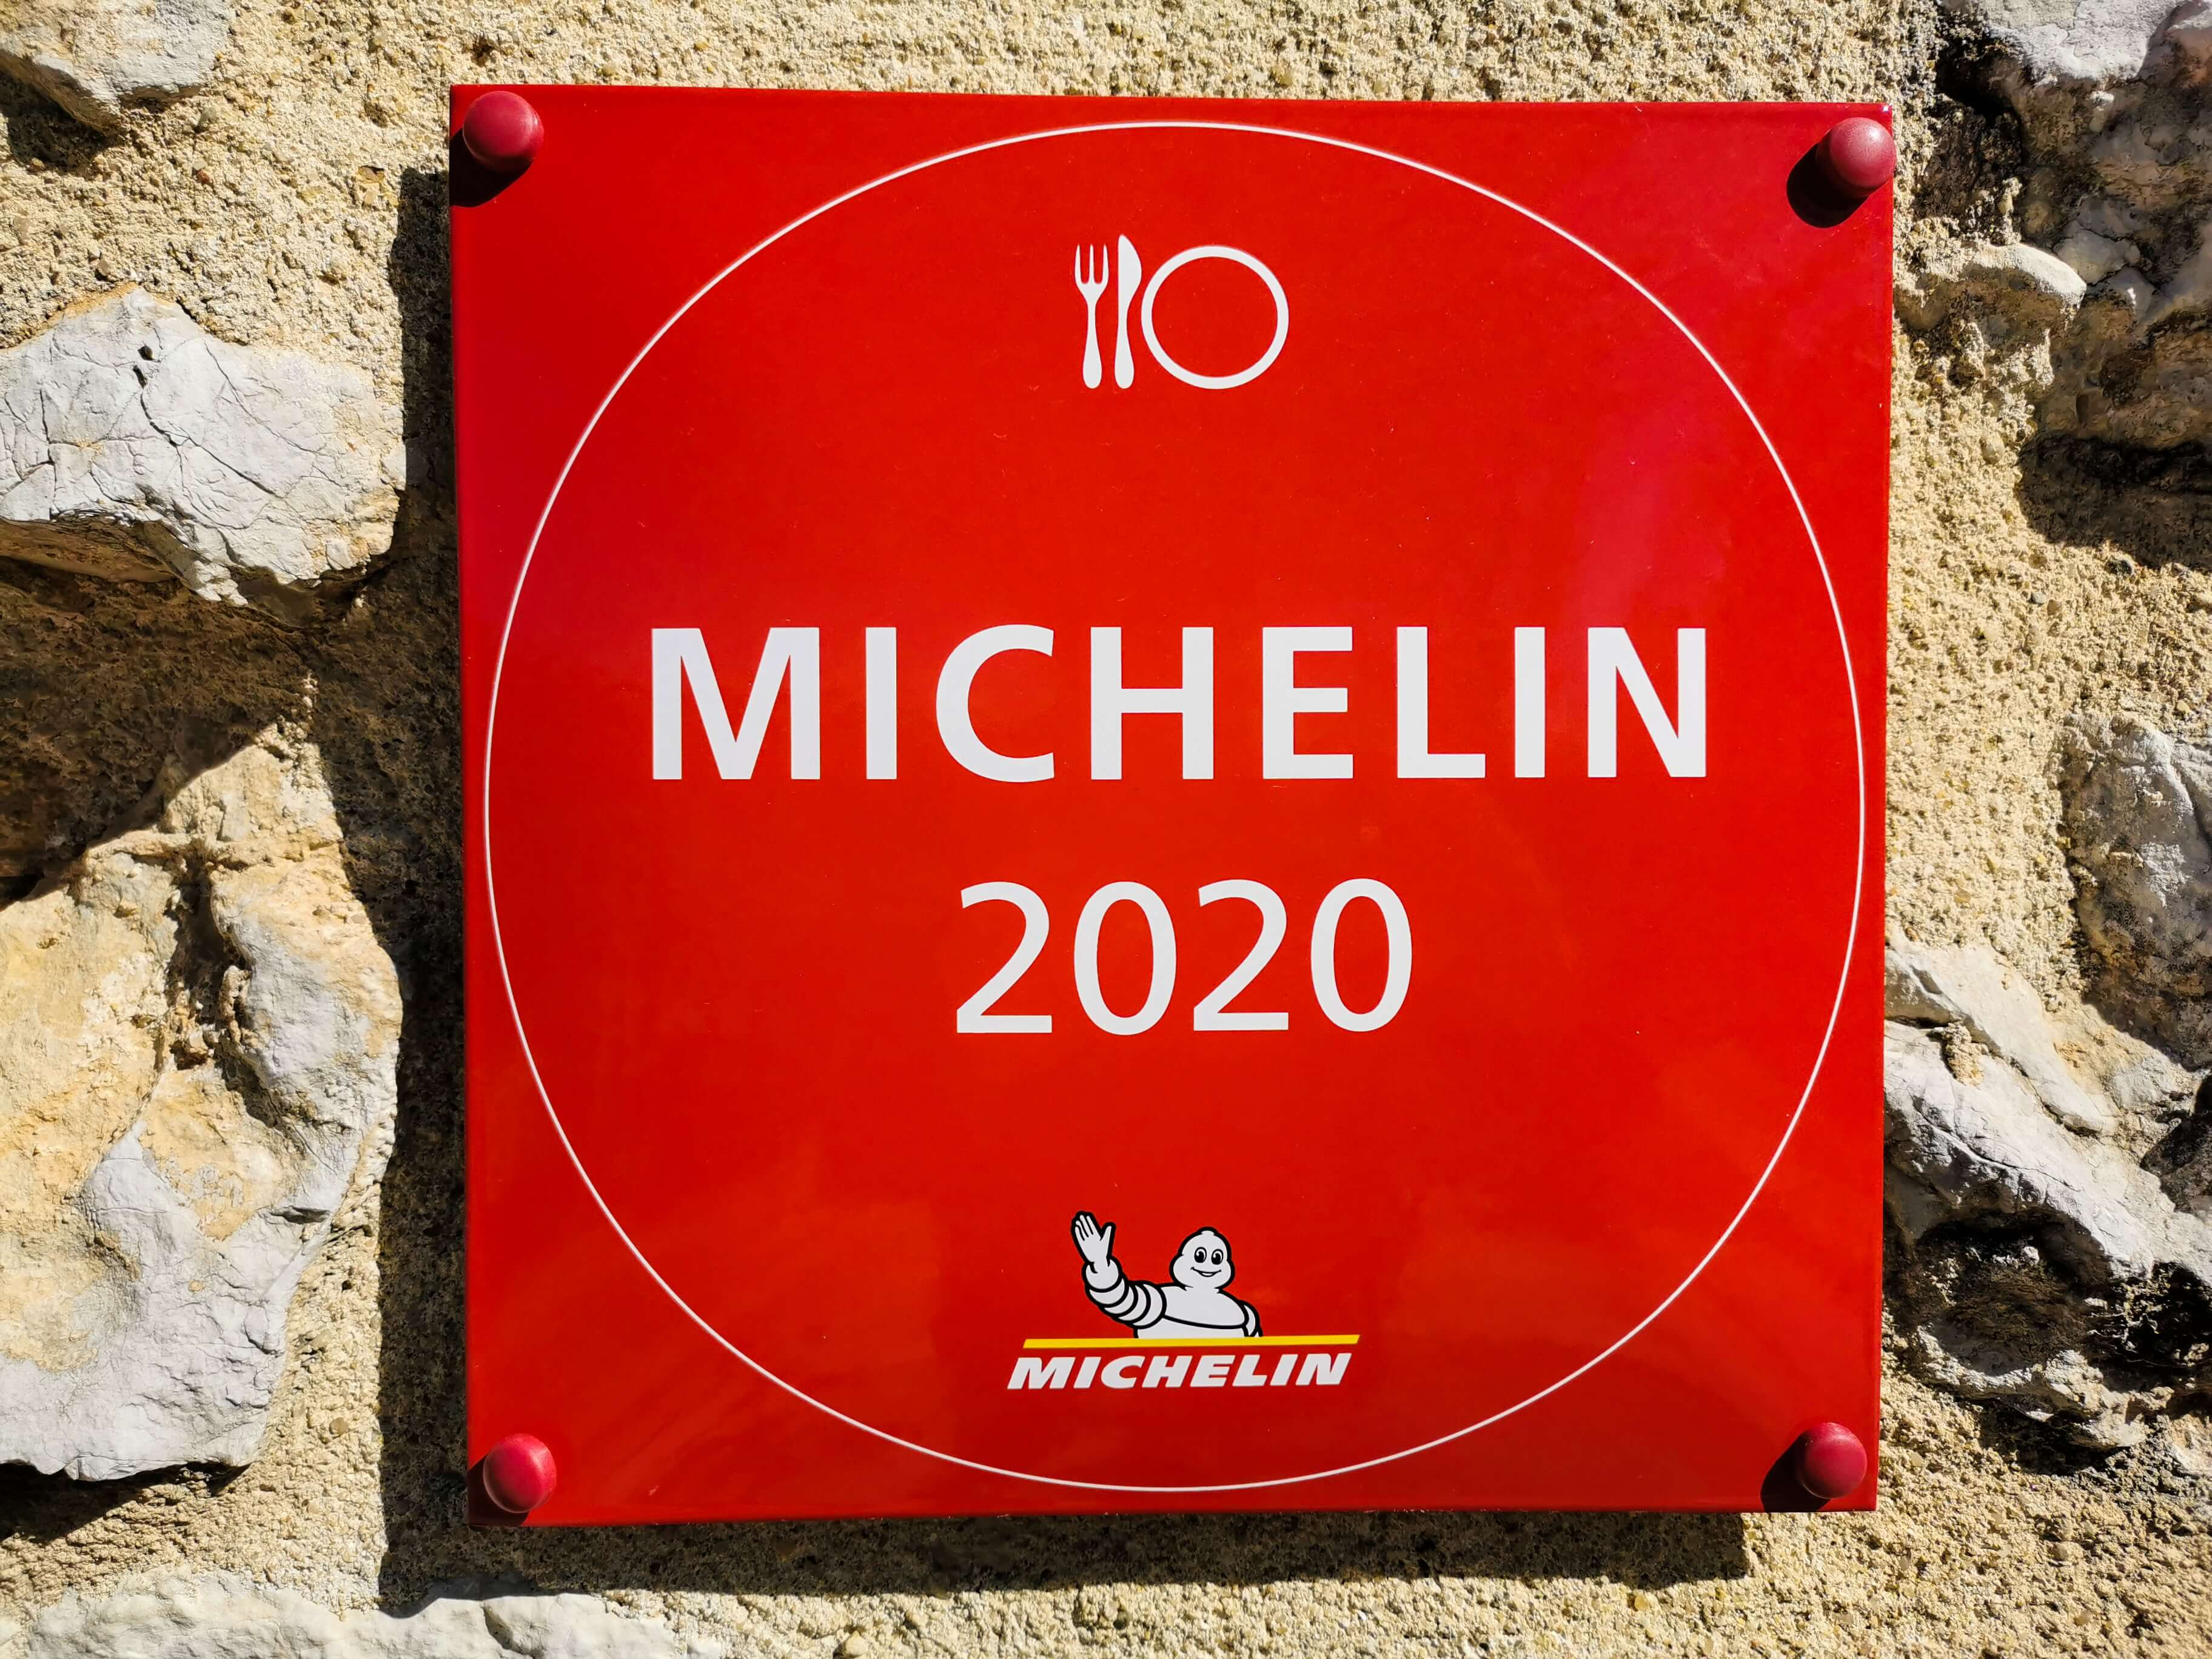 michelin star restaurants in spain feature this sign